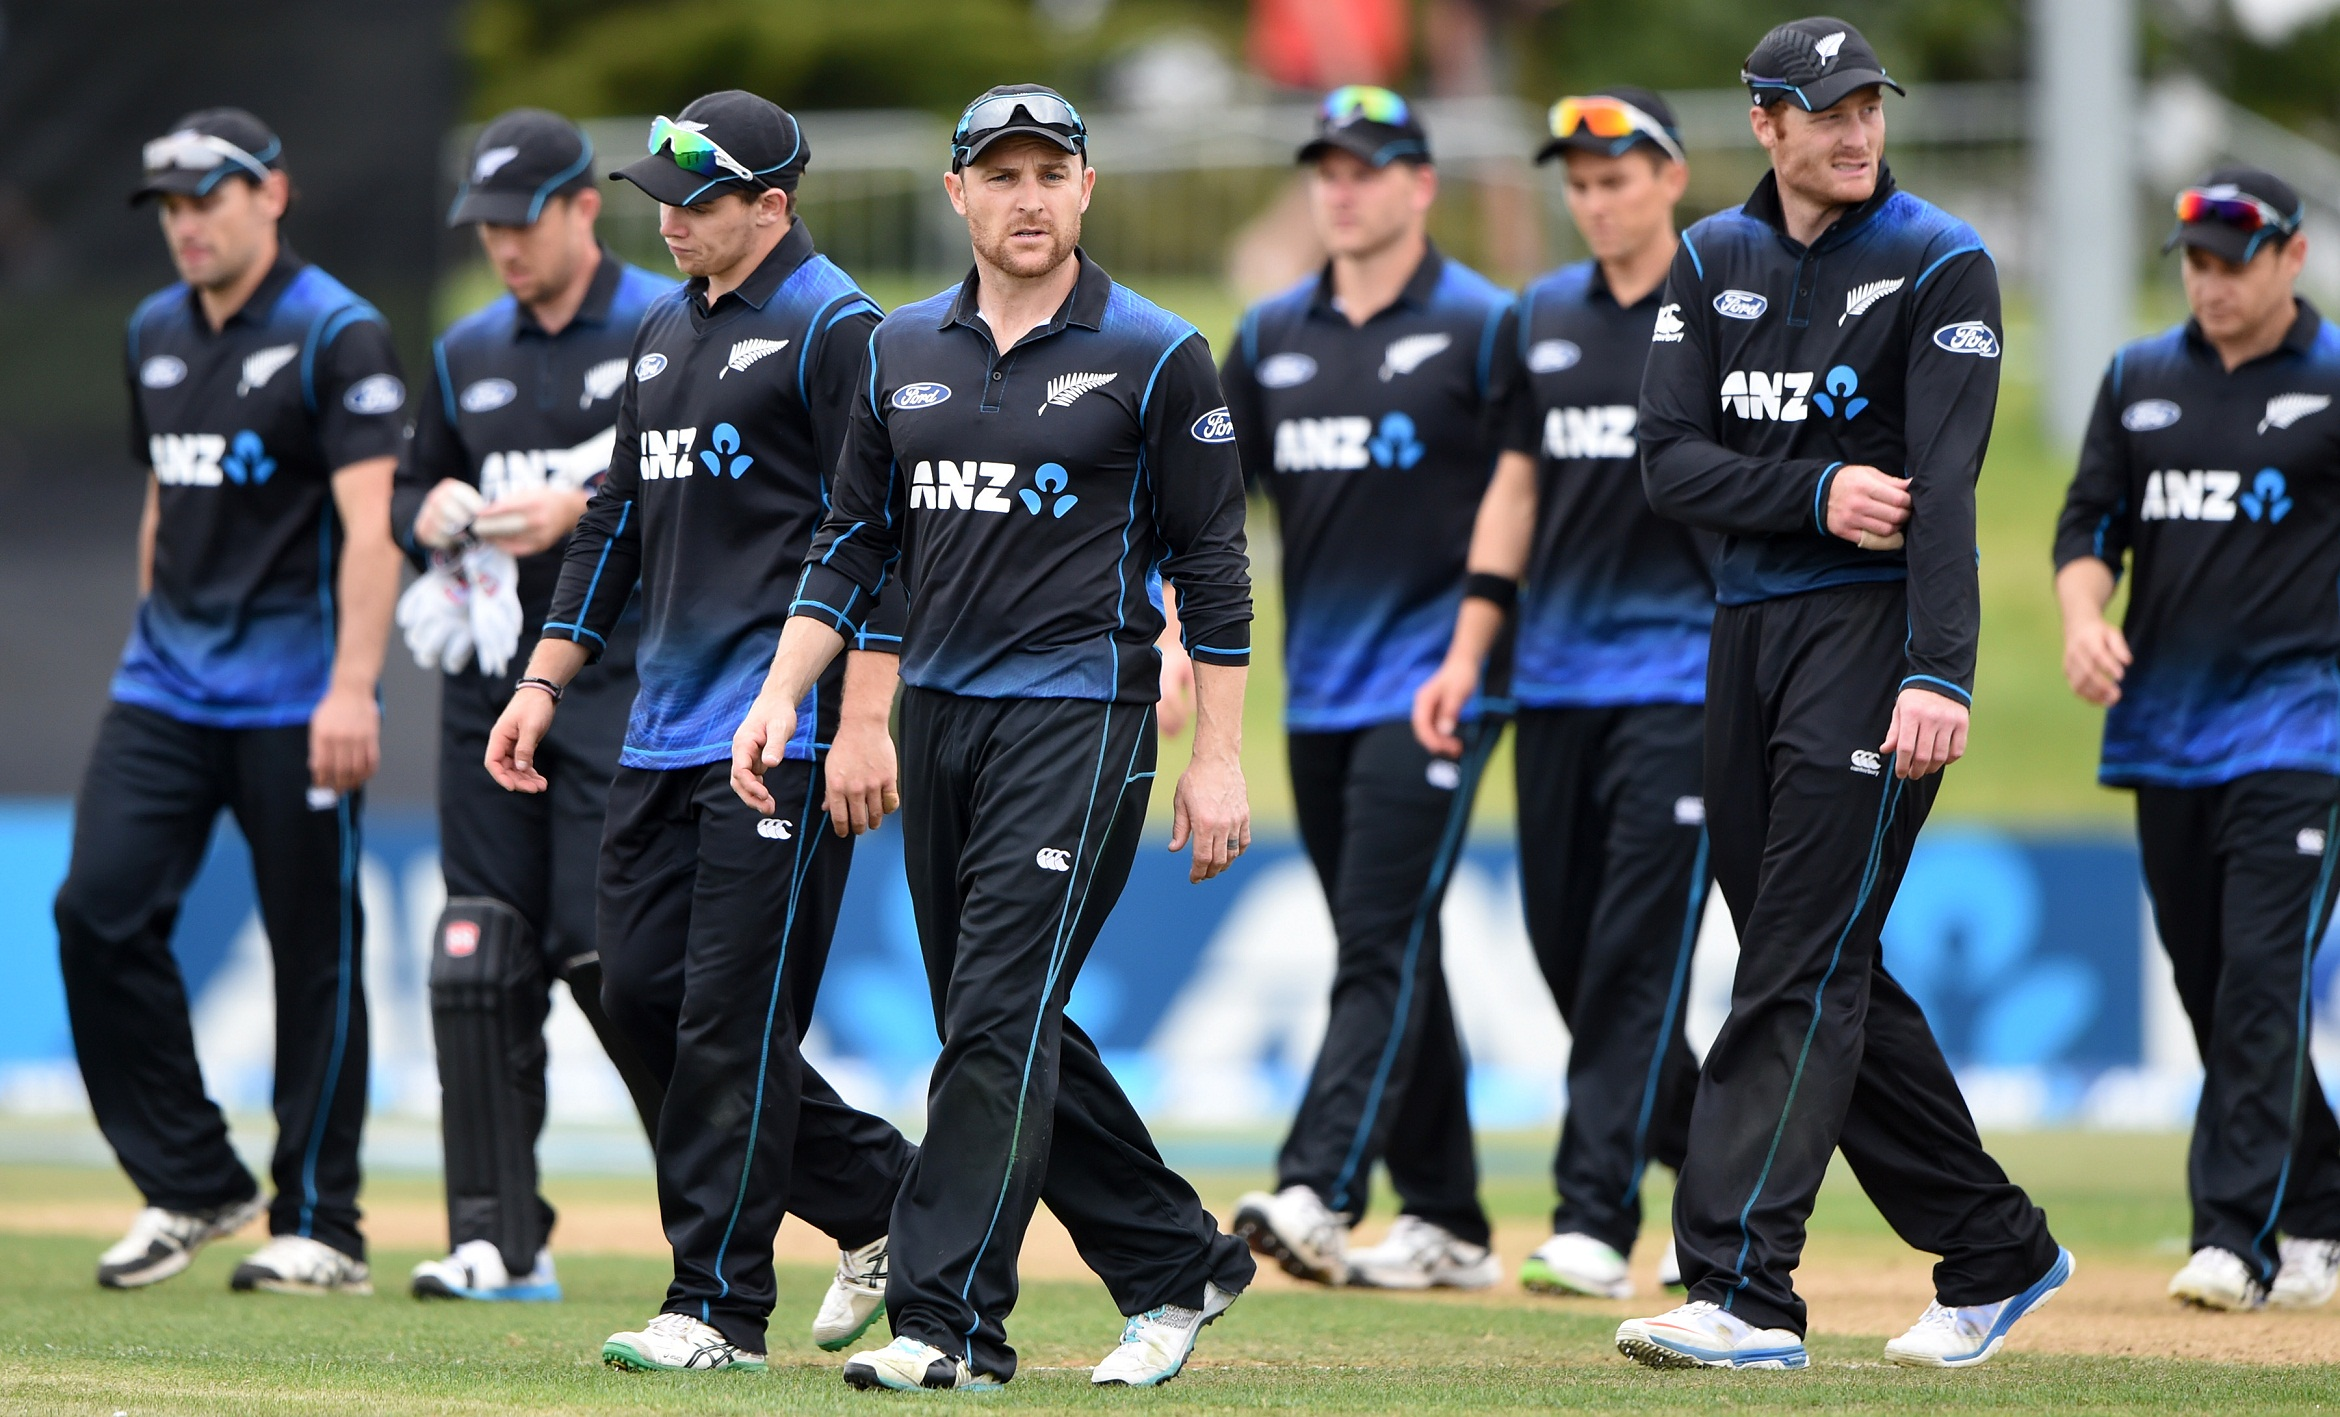 Brendon McCullum leads the players from the field after a comprehensive defeat in the first ODI. ANZ One Day International Cricket Series between New Zealand Back Caps and South Africa, Mount Maunganui, New Zealand. Tuesday 21 October 2014. Photo: Andrew Cornaga/www.Photosport.co.nz